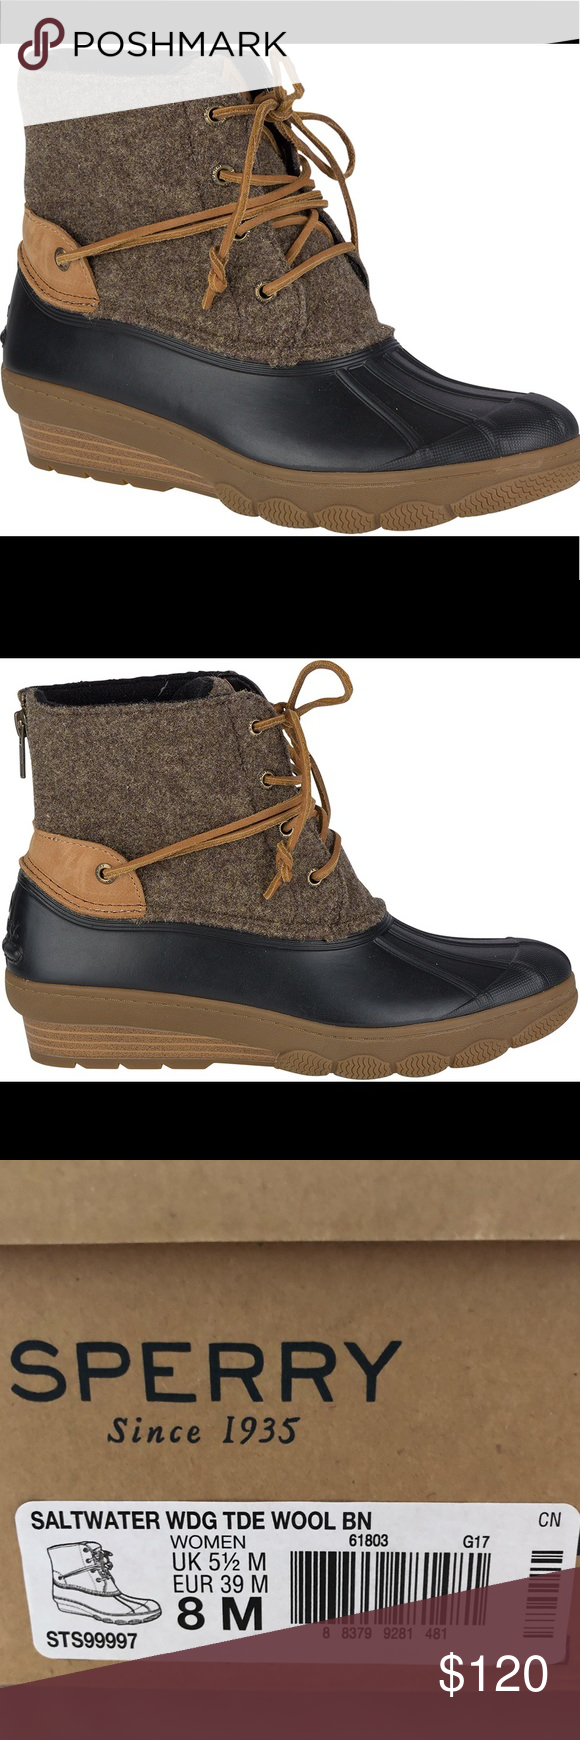 f0e1c9a48bac Sperry Women s Saltwater Wedge Tide Wool Boots Brand New in Box Saltwater  Wedge Tide Wool Boots for women. Size 8. Memory foam cushioning and micro  fleece ...